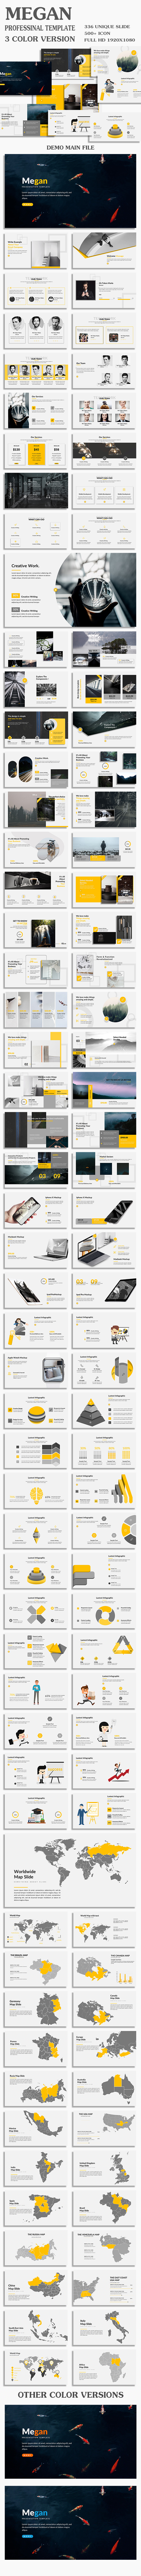 Megan Professinal PowerPoint Template - Creative PowerPoint Templates